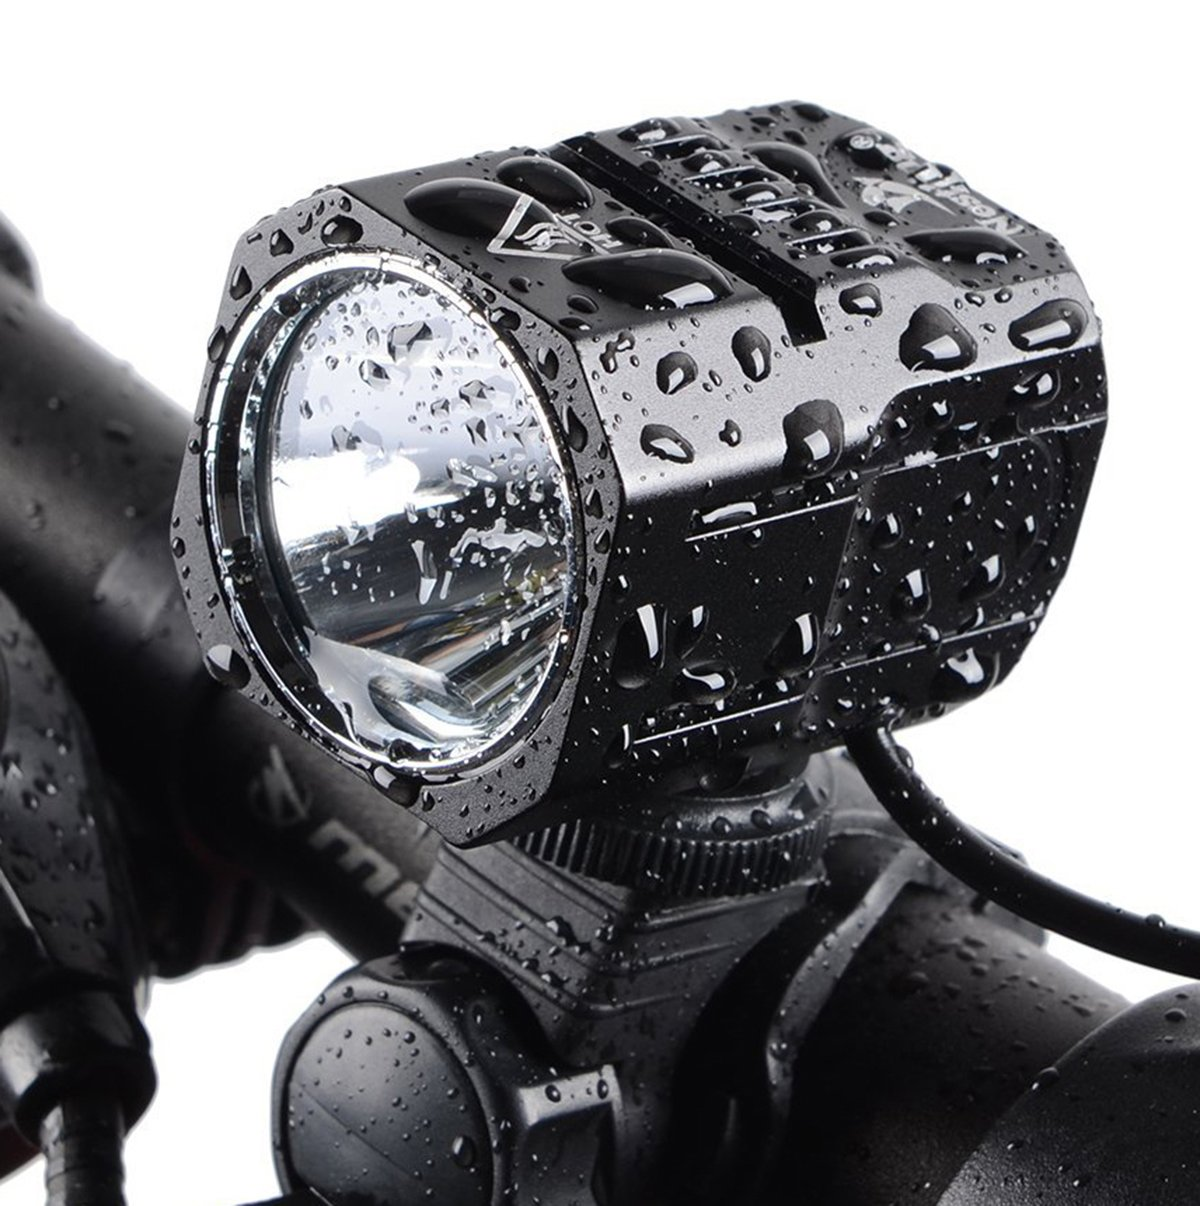 Nestling USB Rechargeable LED Bike Light Set, 1200 Lumen Bicycle Headlight Cree XM-L2 LED Waterproof Bike Front Light Handheld Flashlight with 4400mAh Battery